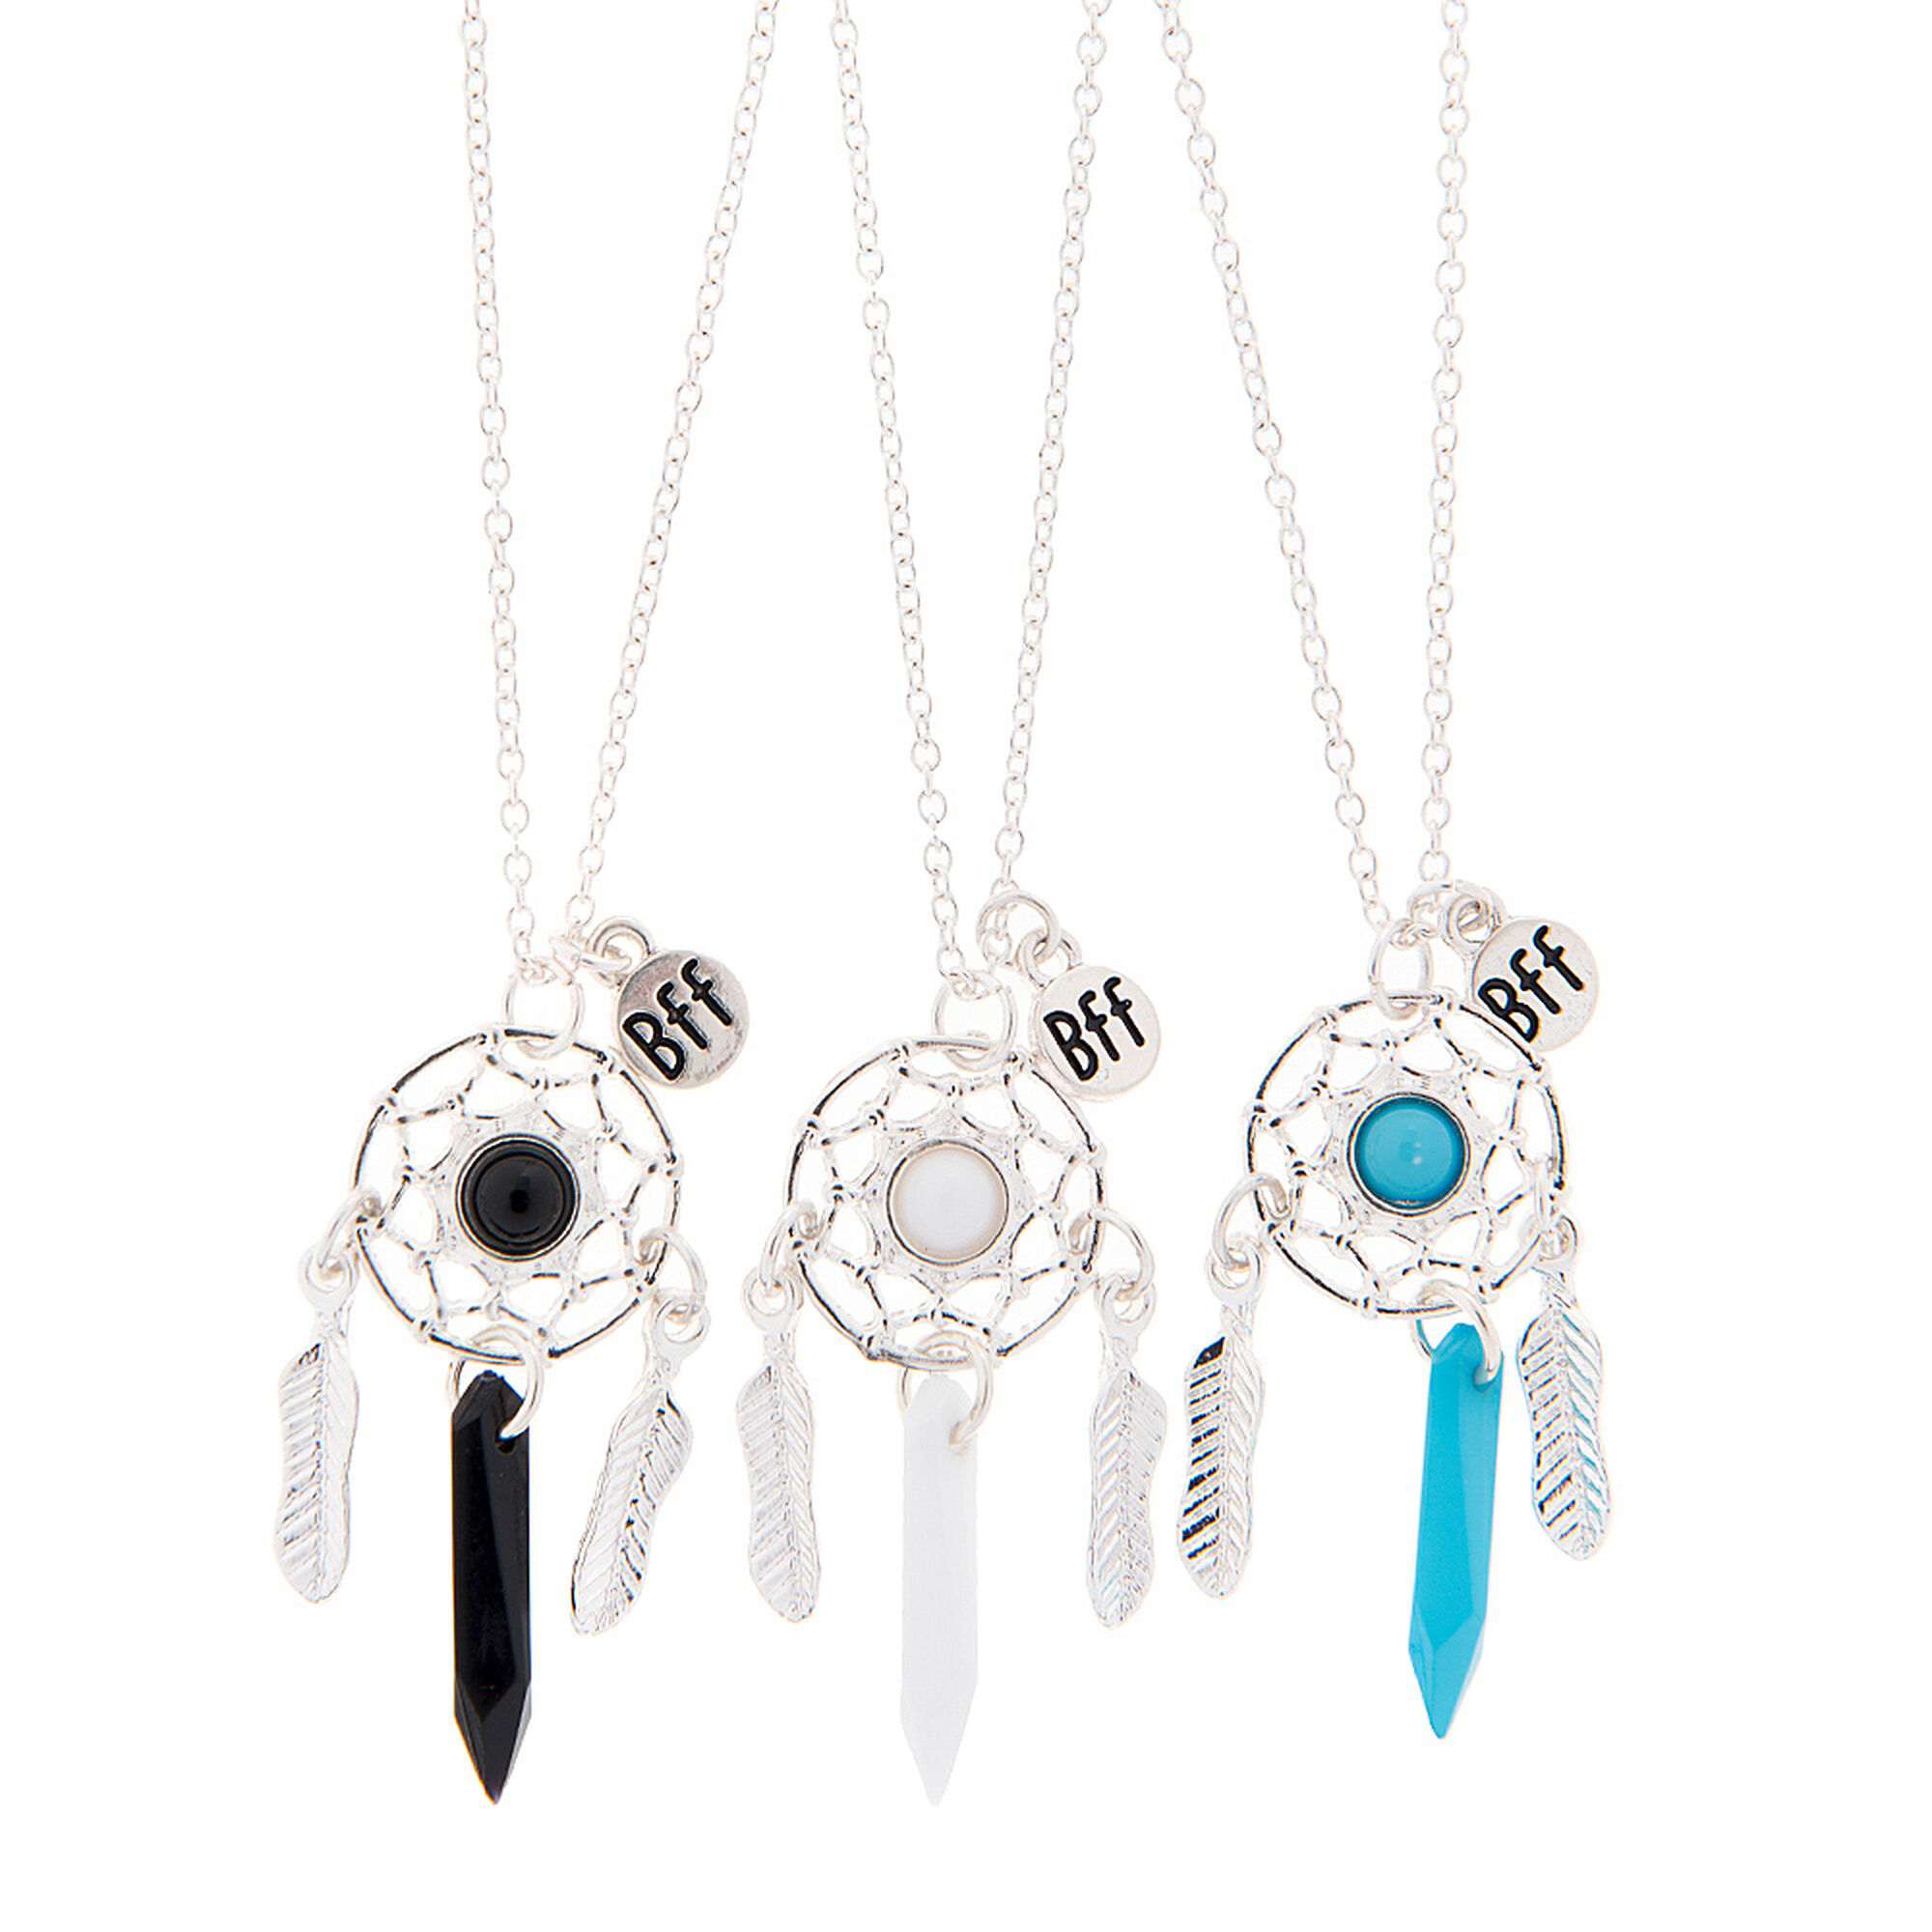 and at hole shot sapphire screen catcher karat jackson necklace dream dreamcatcher diamond pm products